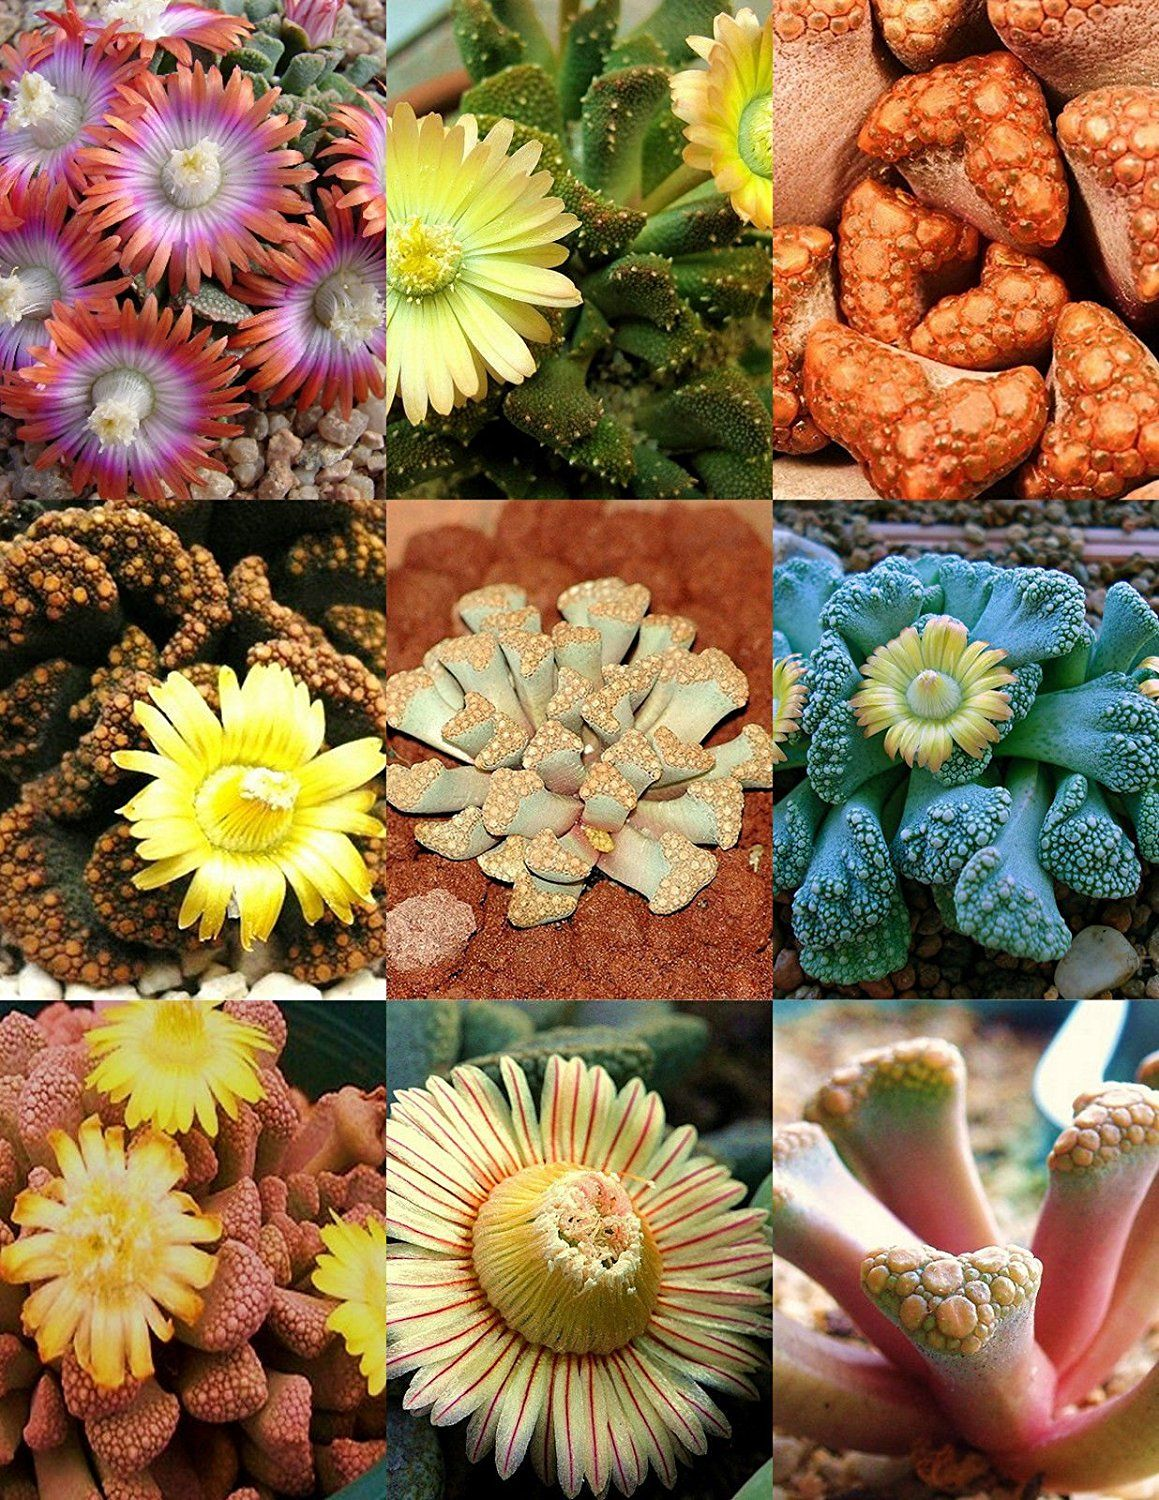 Titanopsis Mix, Succulent Cactus Mixed Living